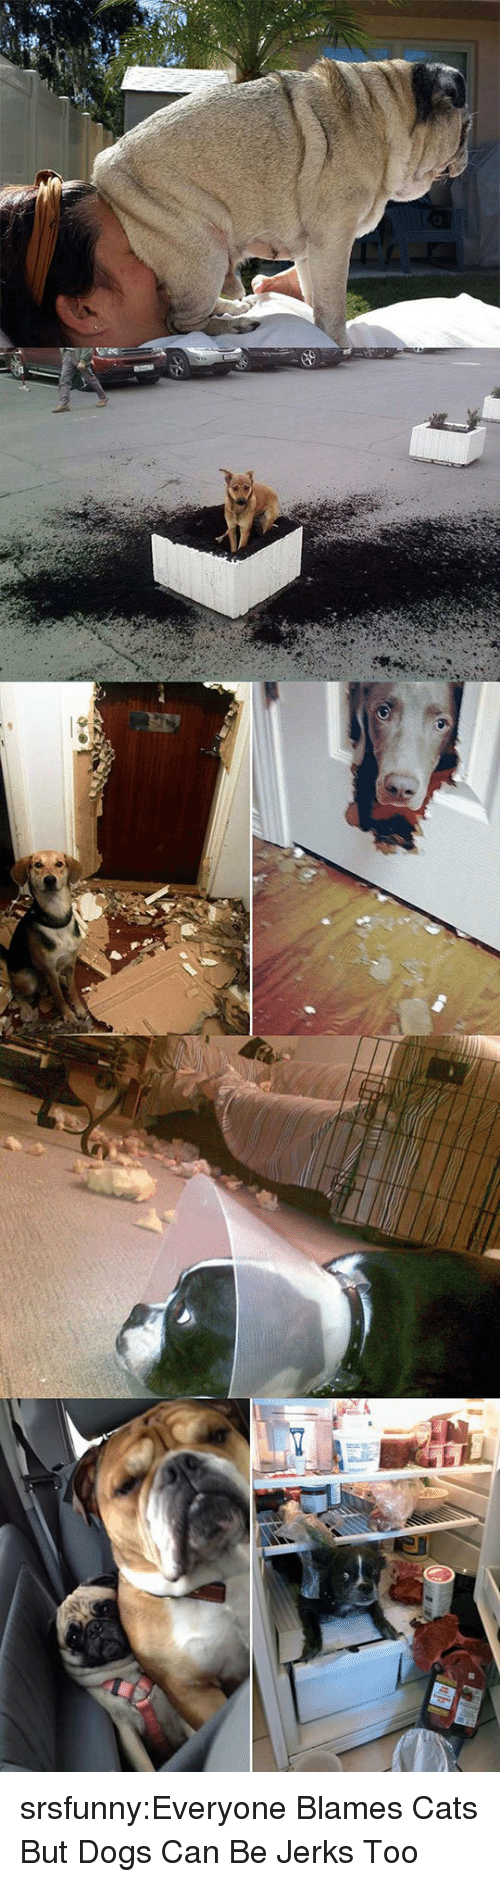 Jerks: srsfunny:Everyone Blames Cats But Dogs Can Be Jerks Too